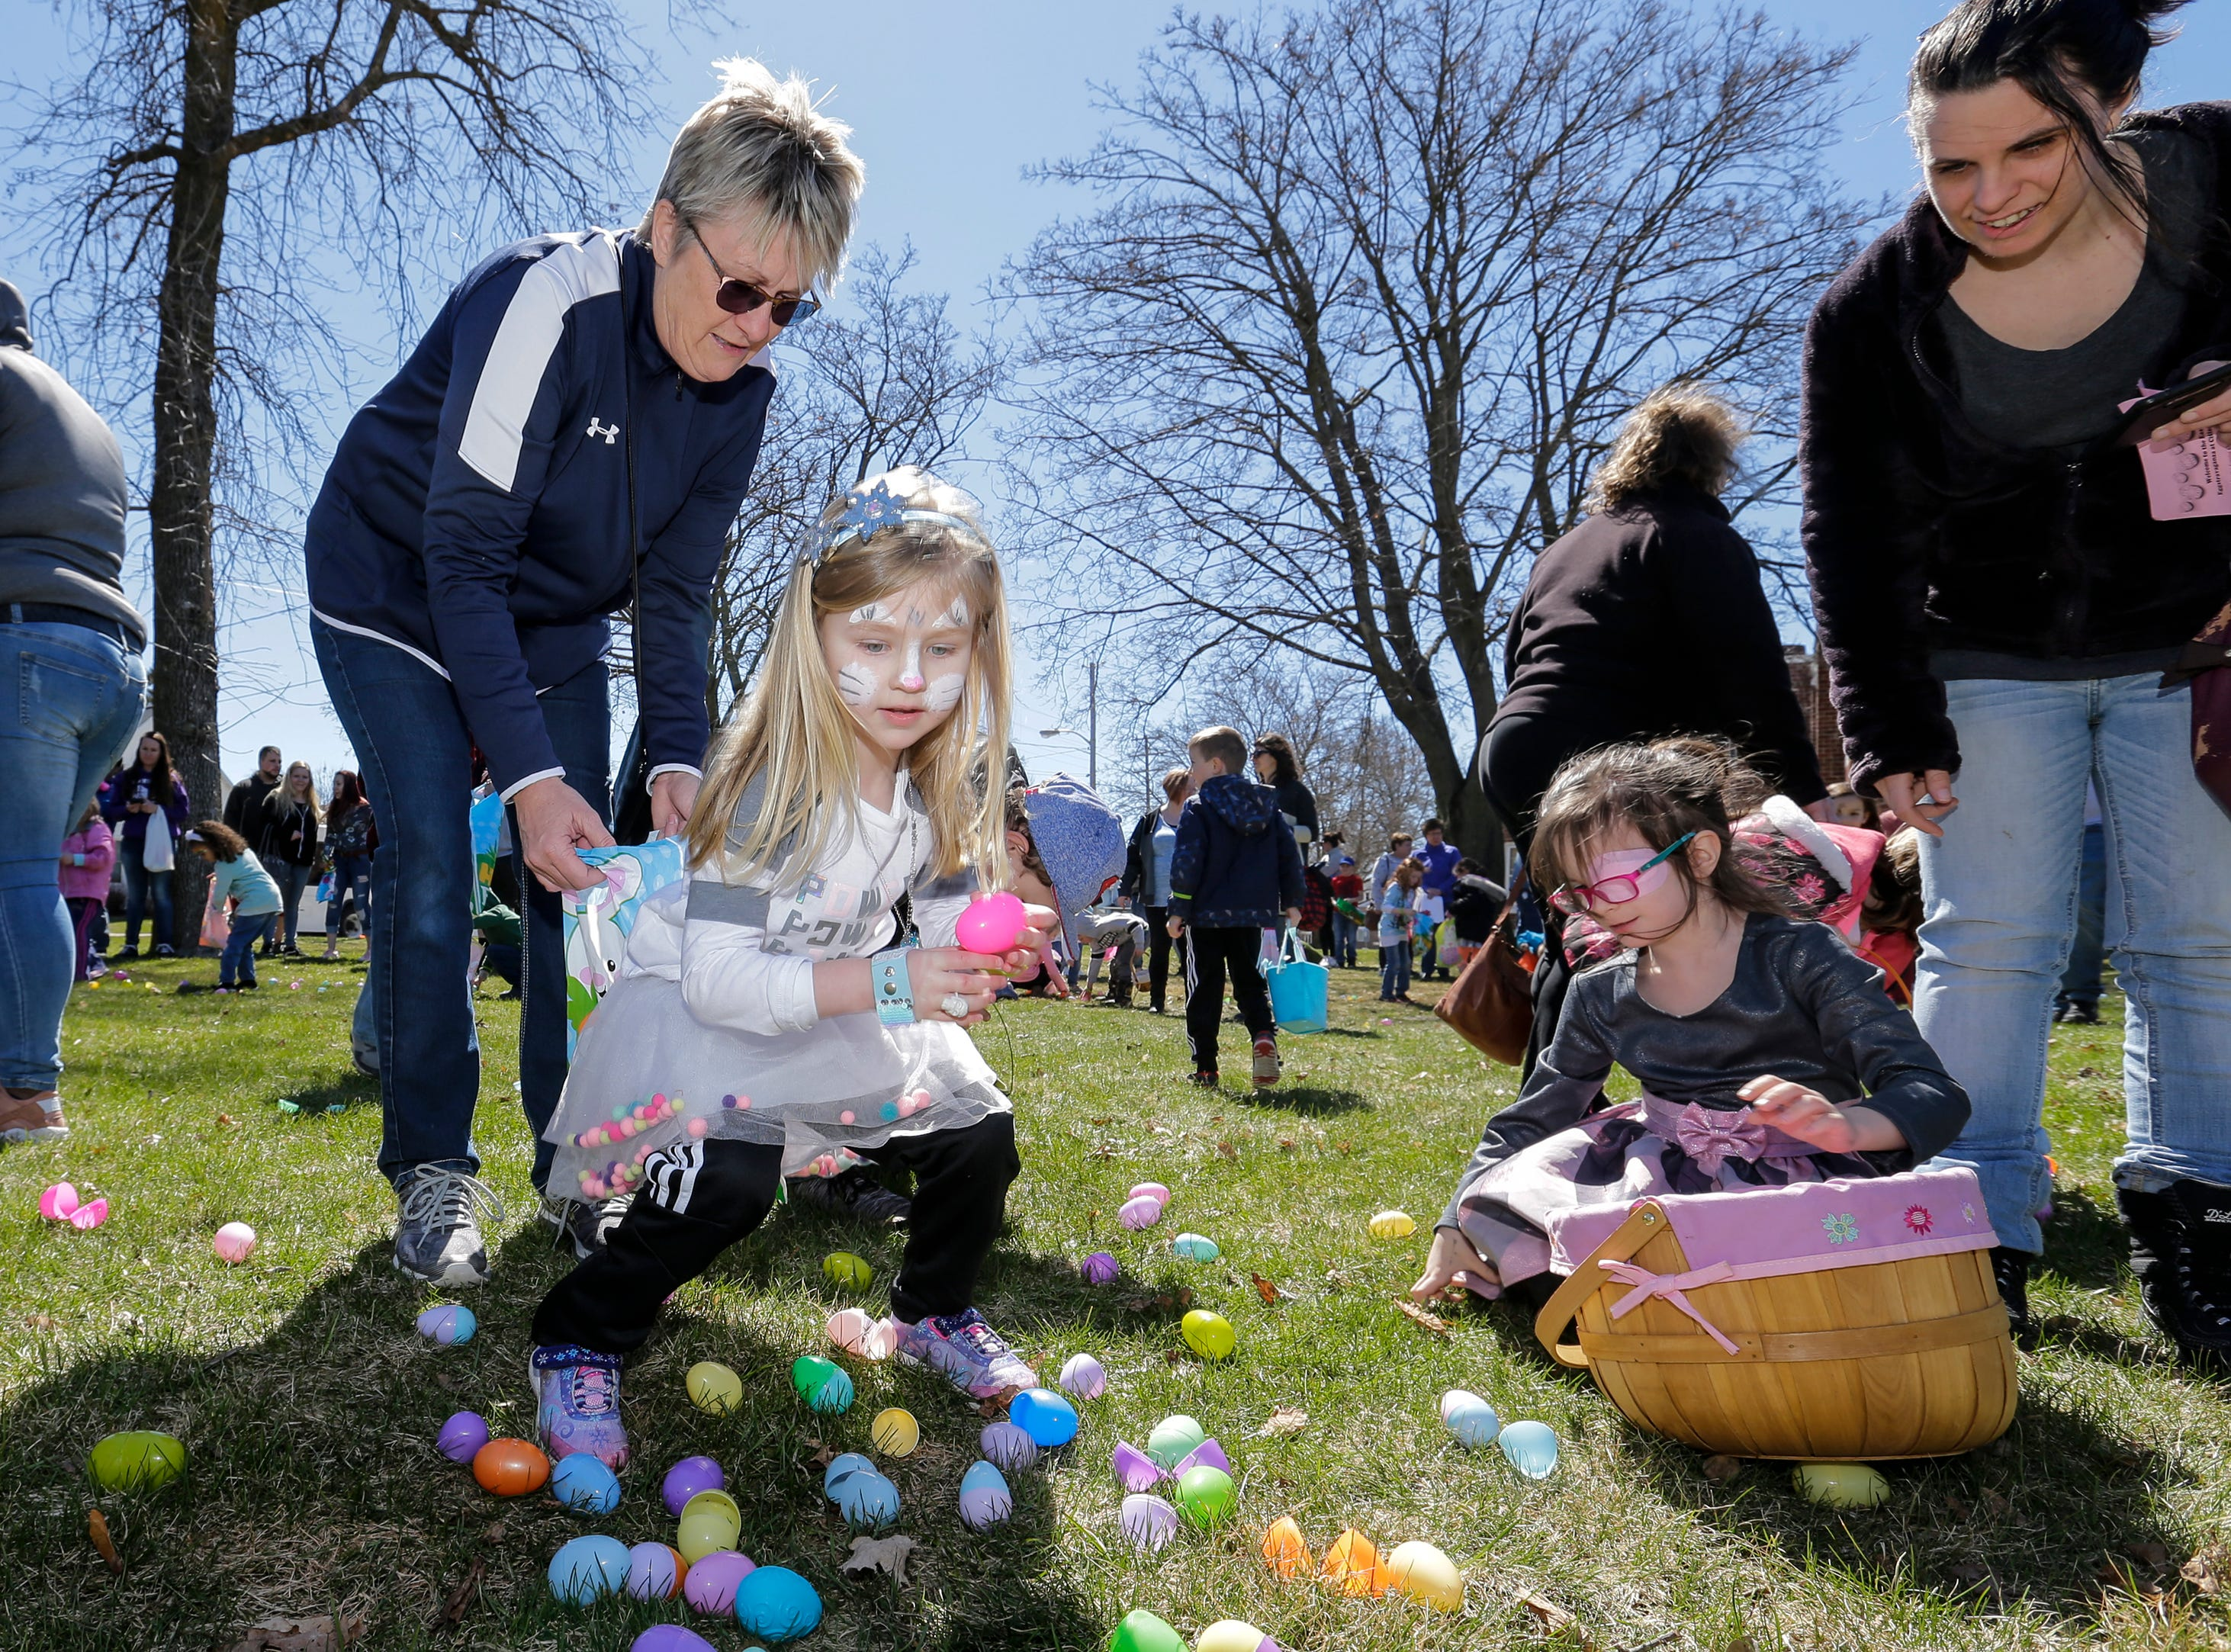 Lily Rysinski, 4, gets help from her aunt Teri Risch during the Easter Eggstravaganza at Citizen Park Saturday, April 20, 2019, in Manitowoc, Wis. Joshua Clark/USA TODAY NETWORK-Wisconsin